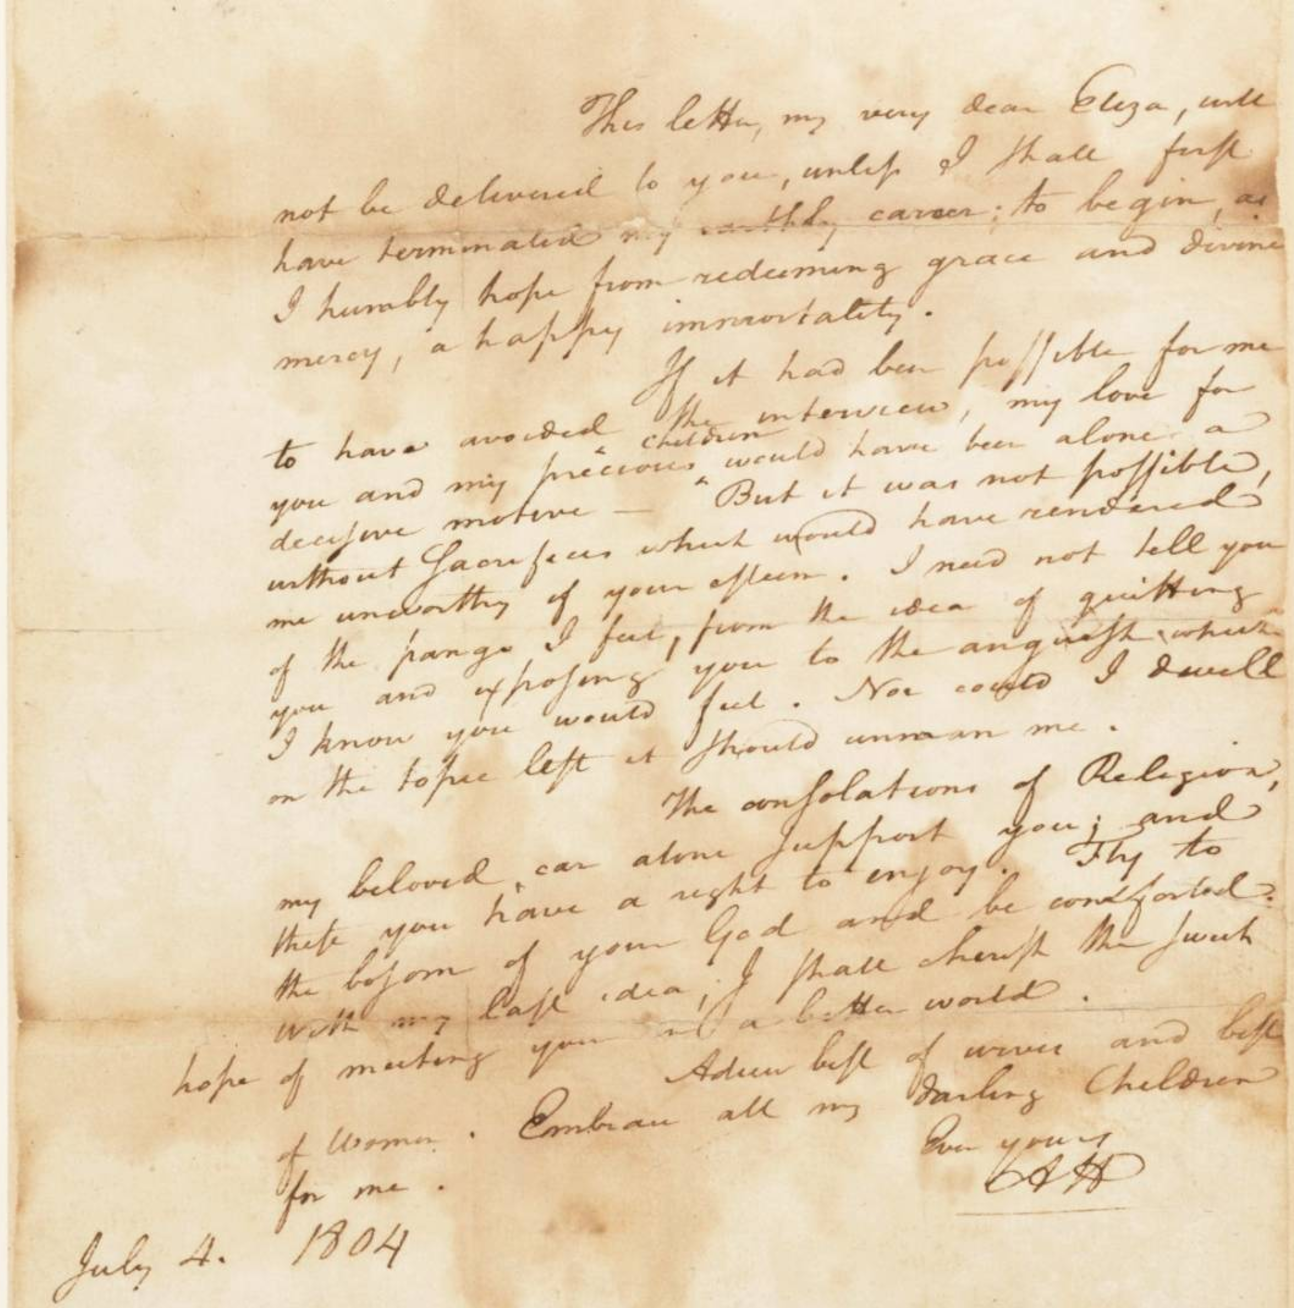 Alexander Hamilton's Farewell Letter to His Wife Eliza, July